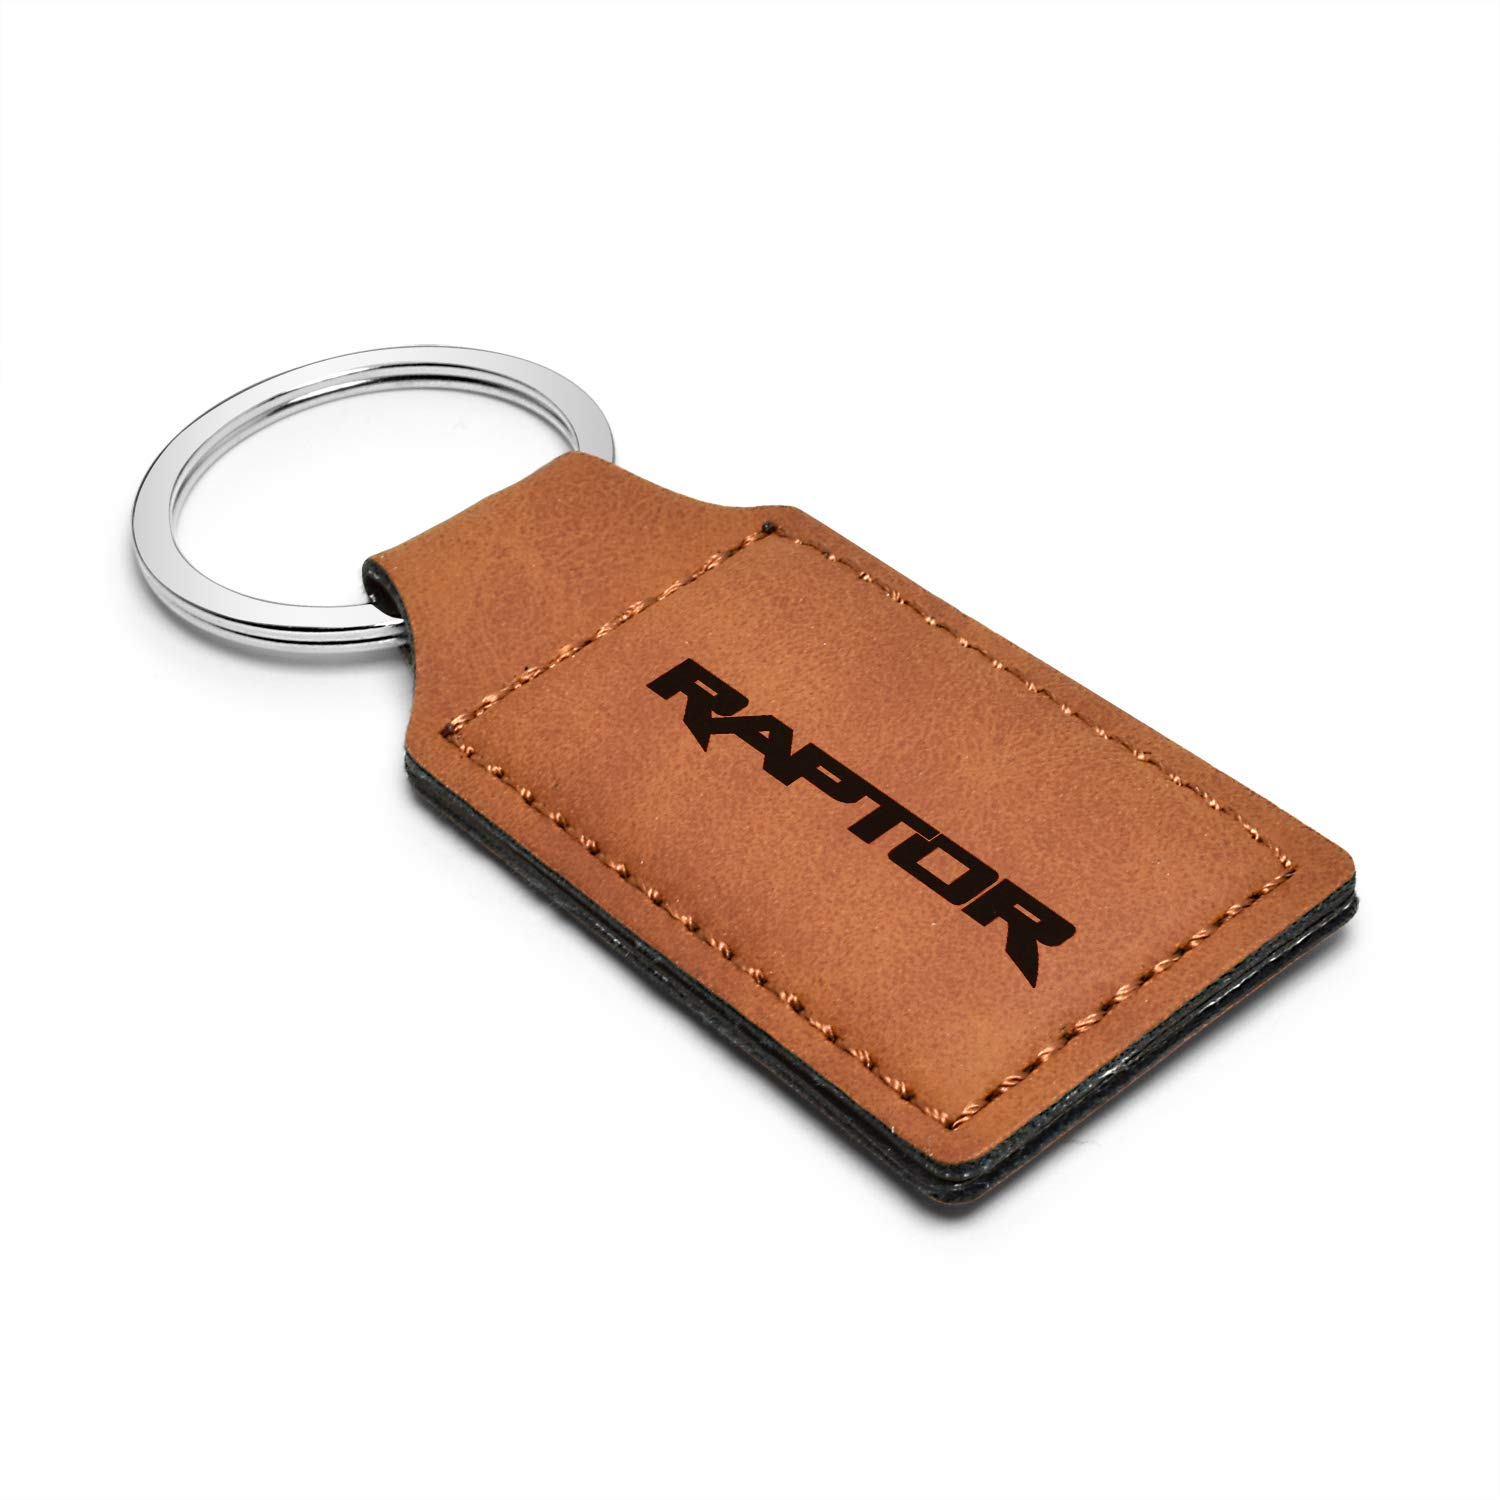 Ford Rectangular Brown Leather Key Chain F-150 Raptor 2017 to 2019 iPick Image